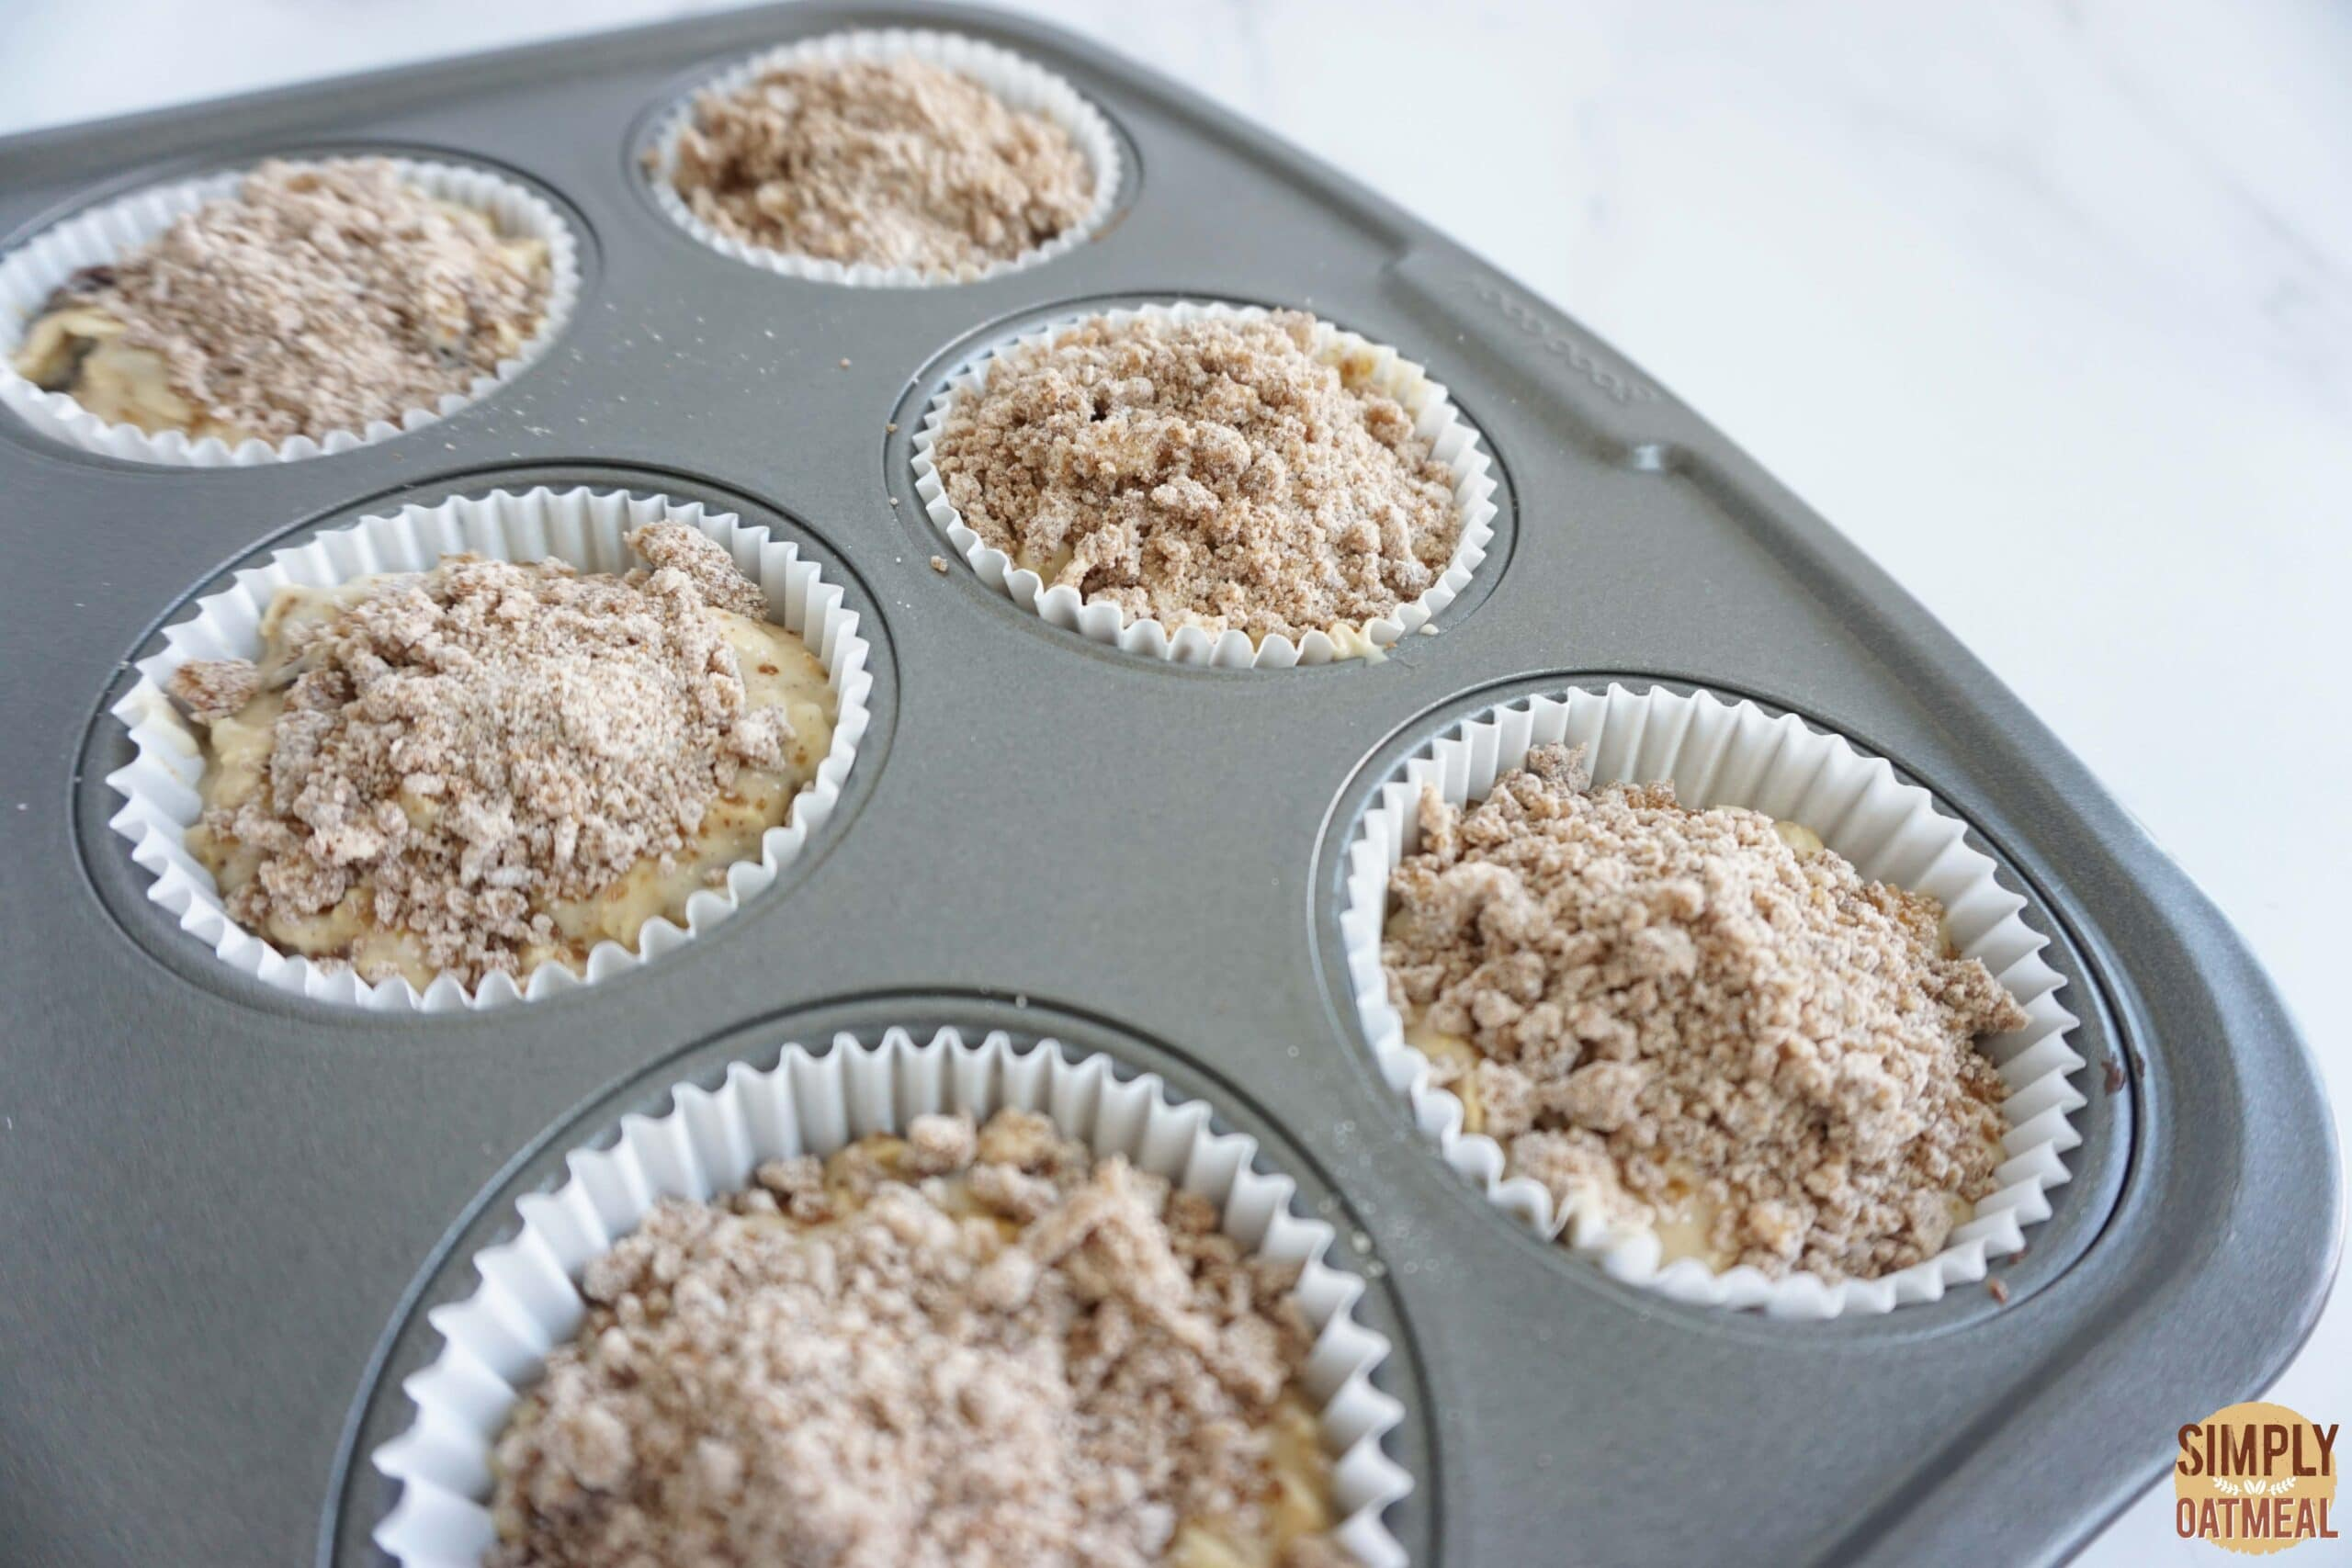 Baked cinnamon streusel oatmeal muffins in a muffin pan